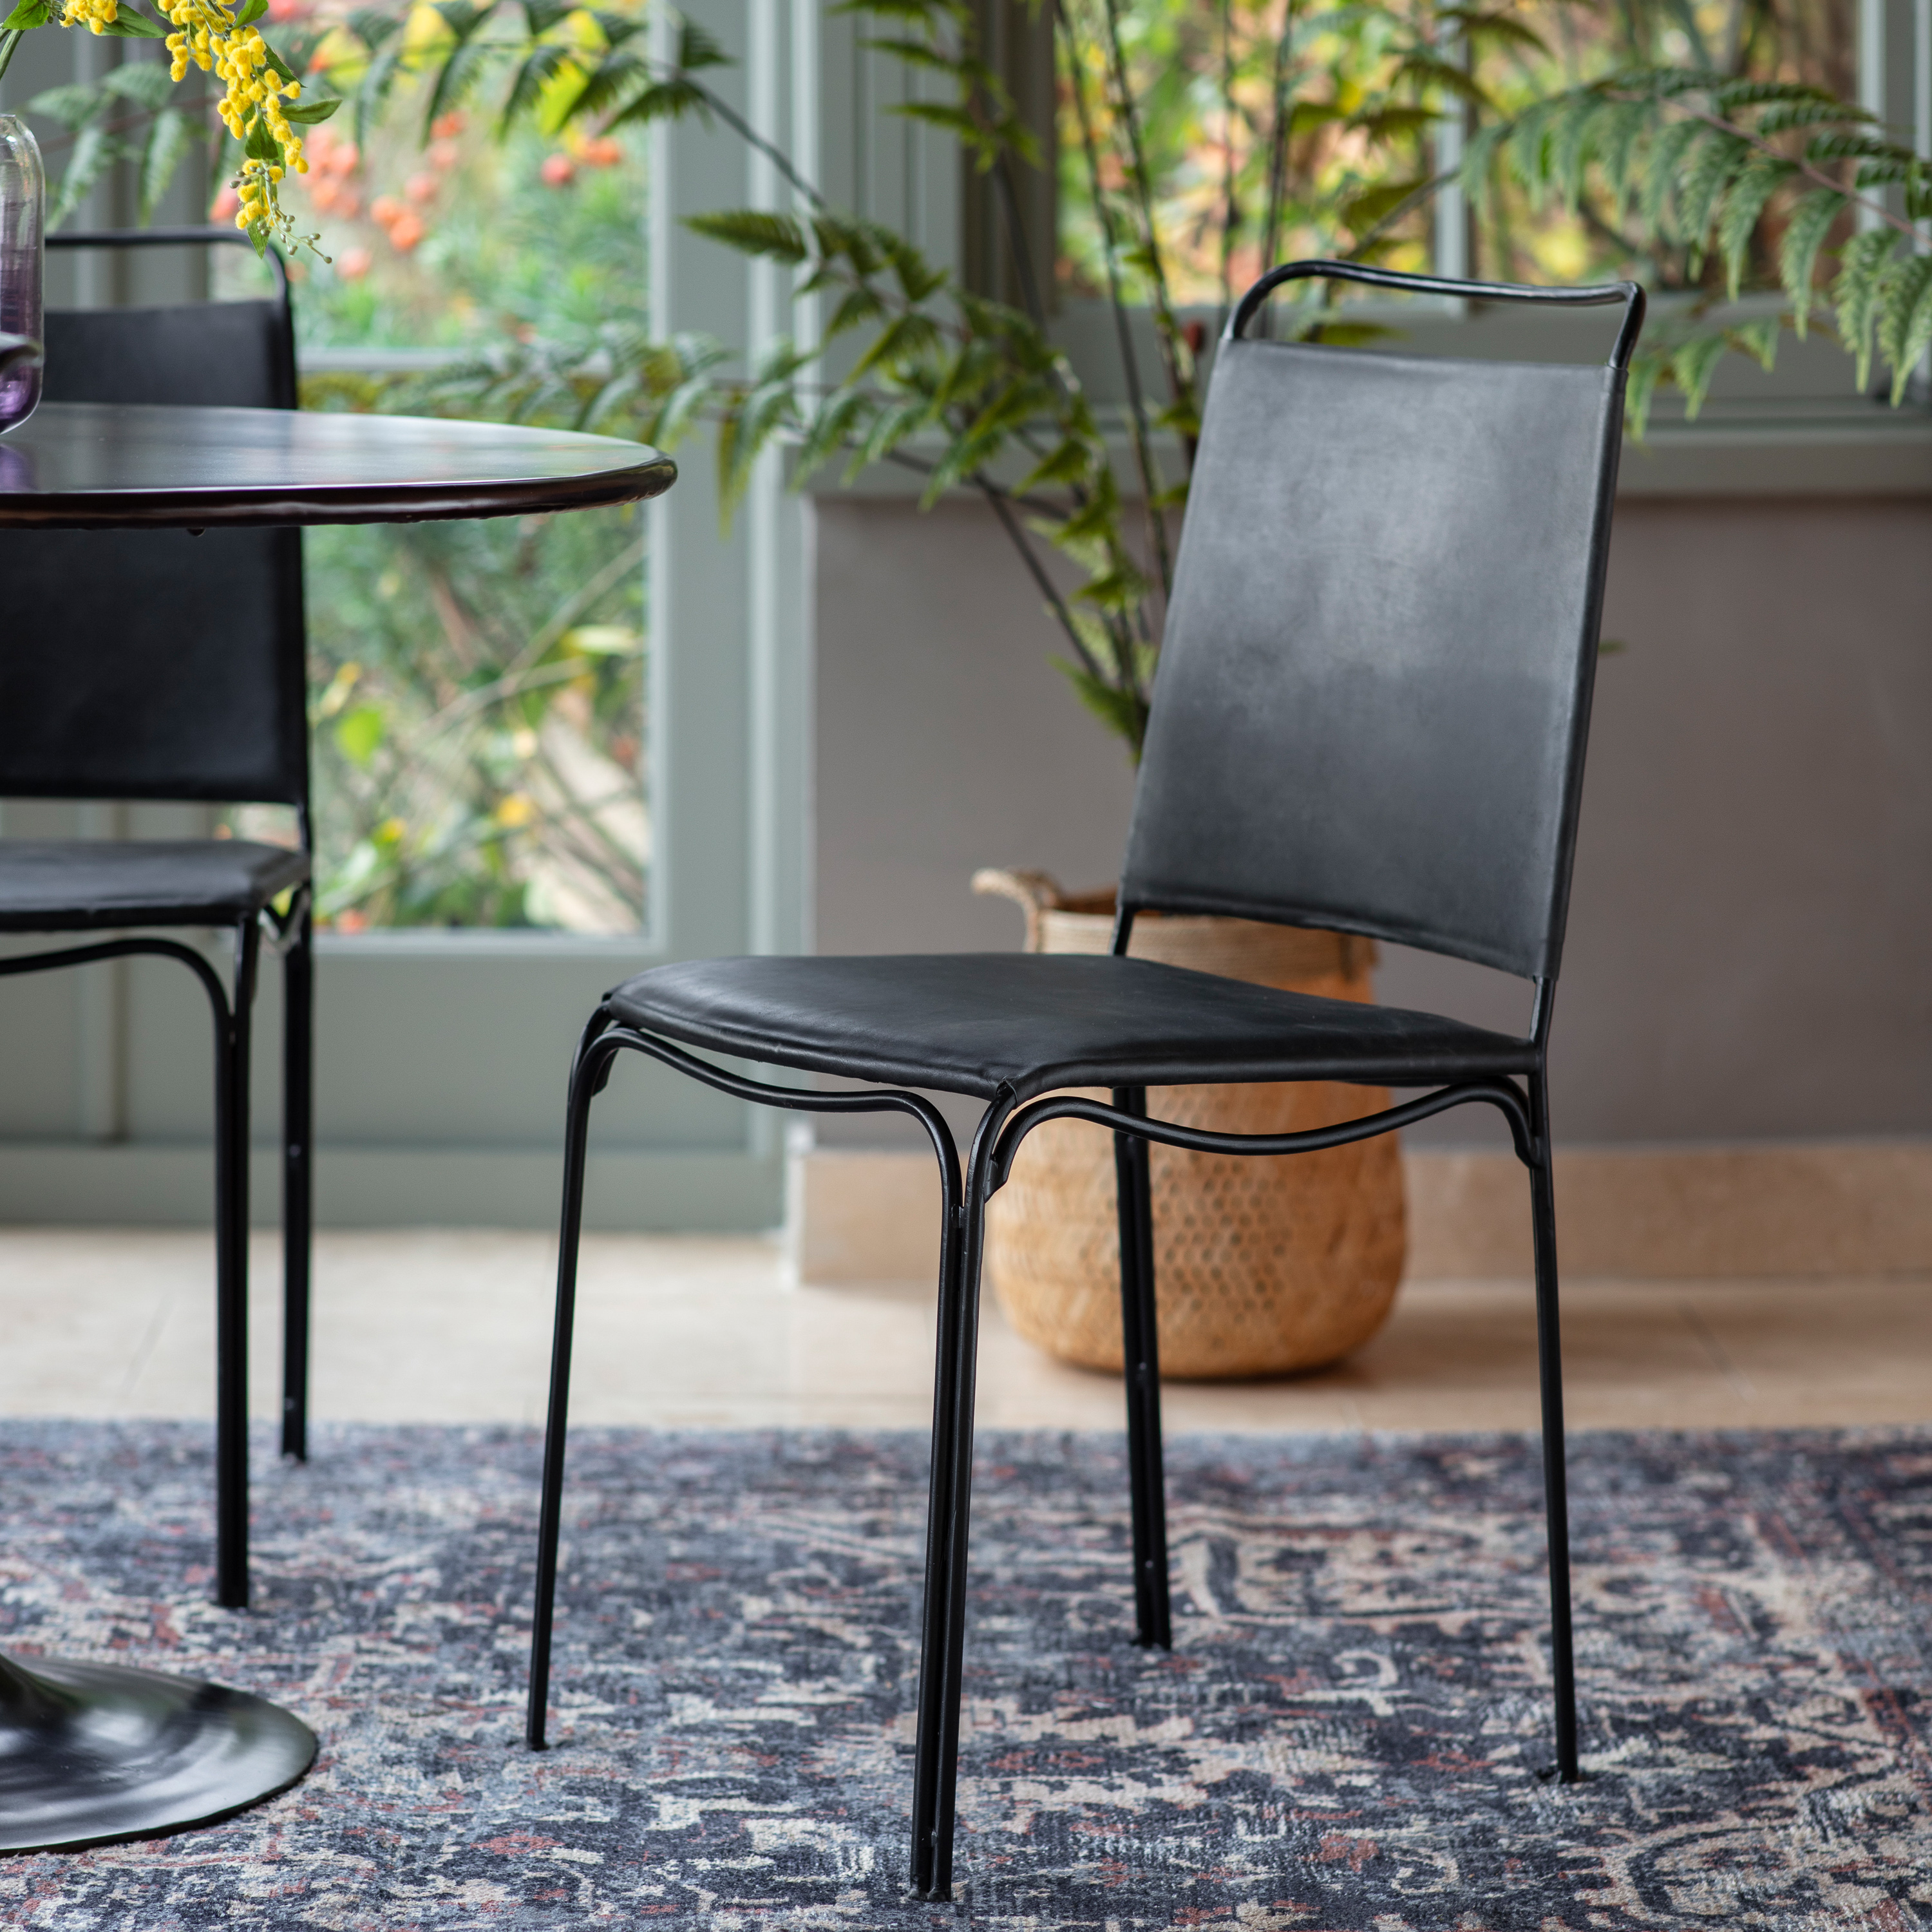 Petham Dining Chair Black (2pk)